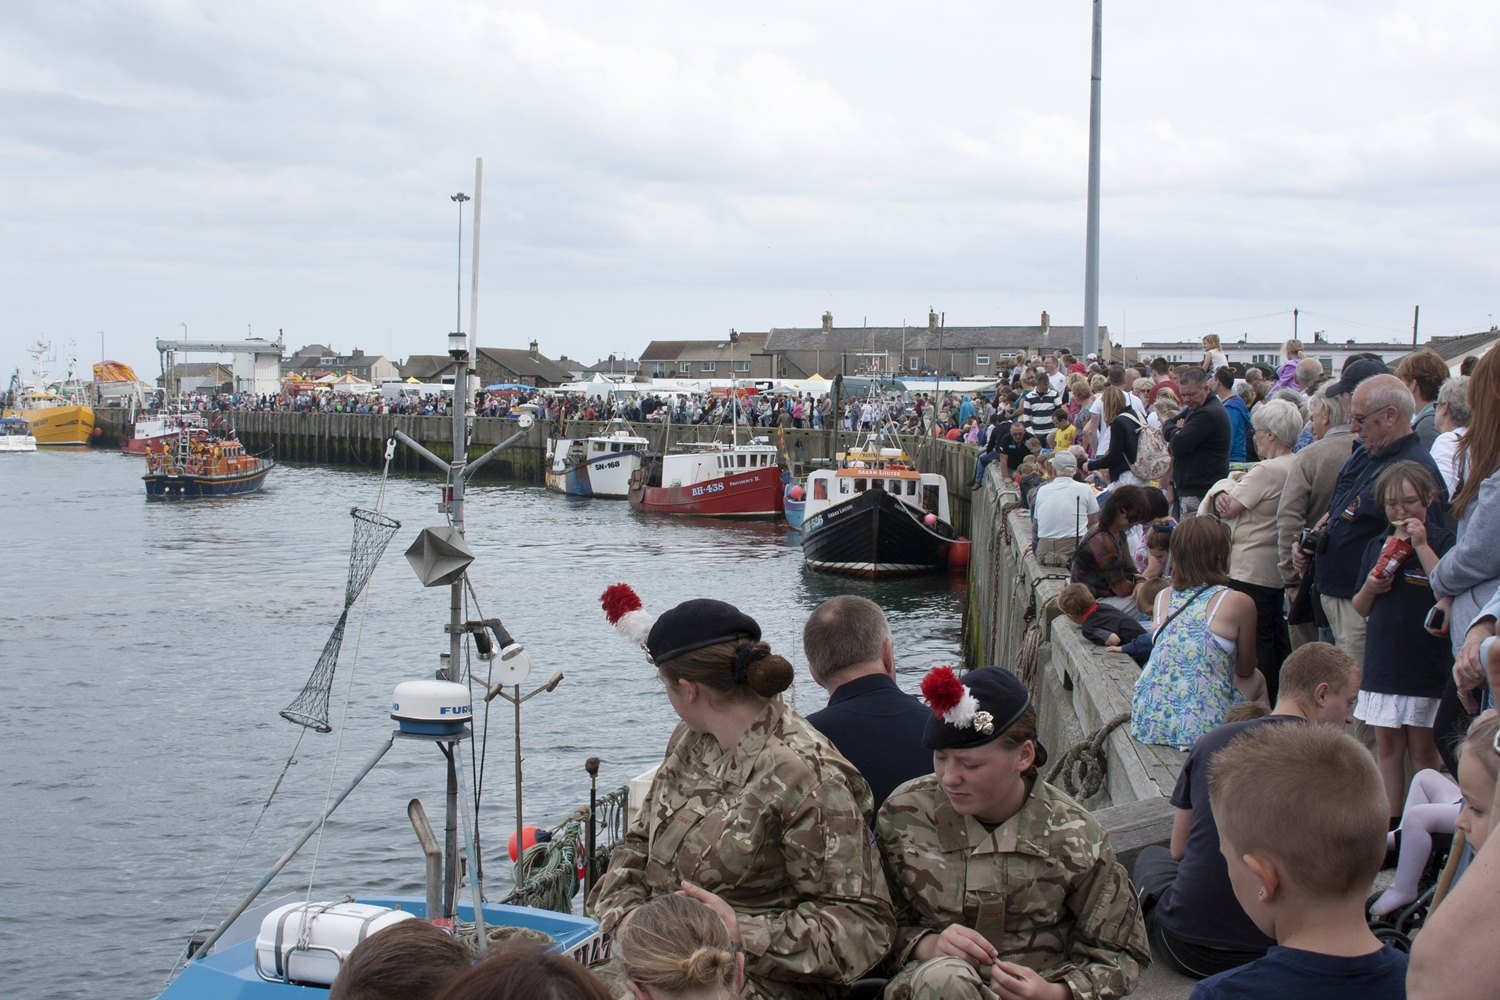 Aug: Lifeboat Day crowds